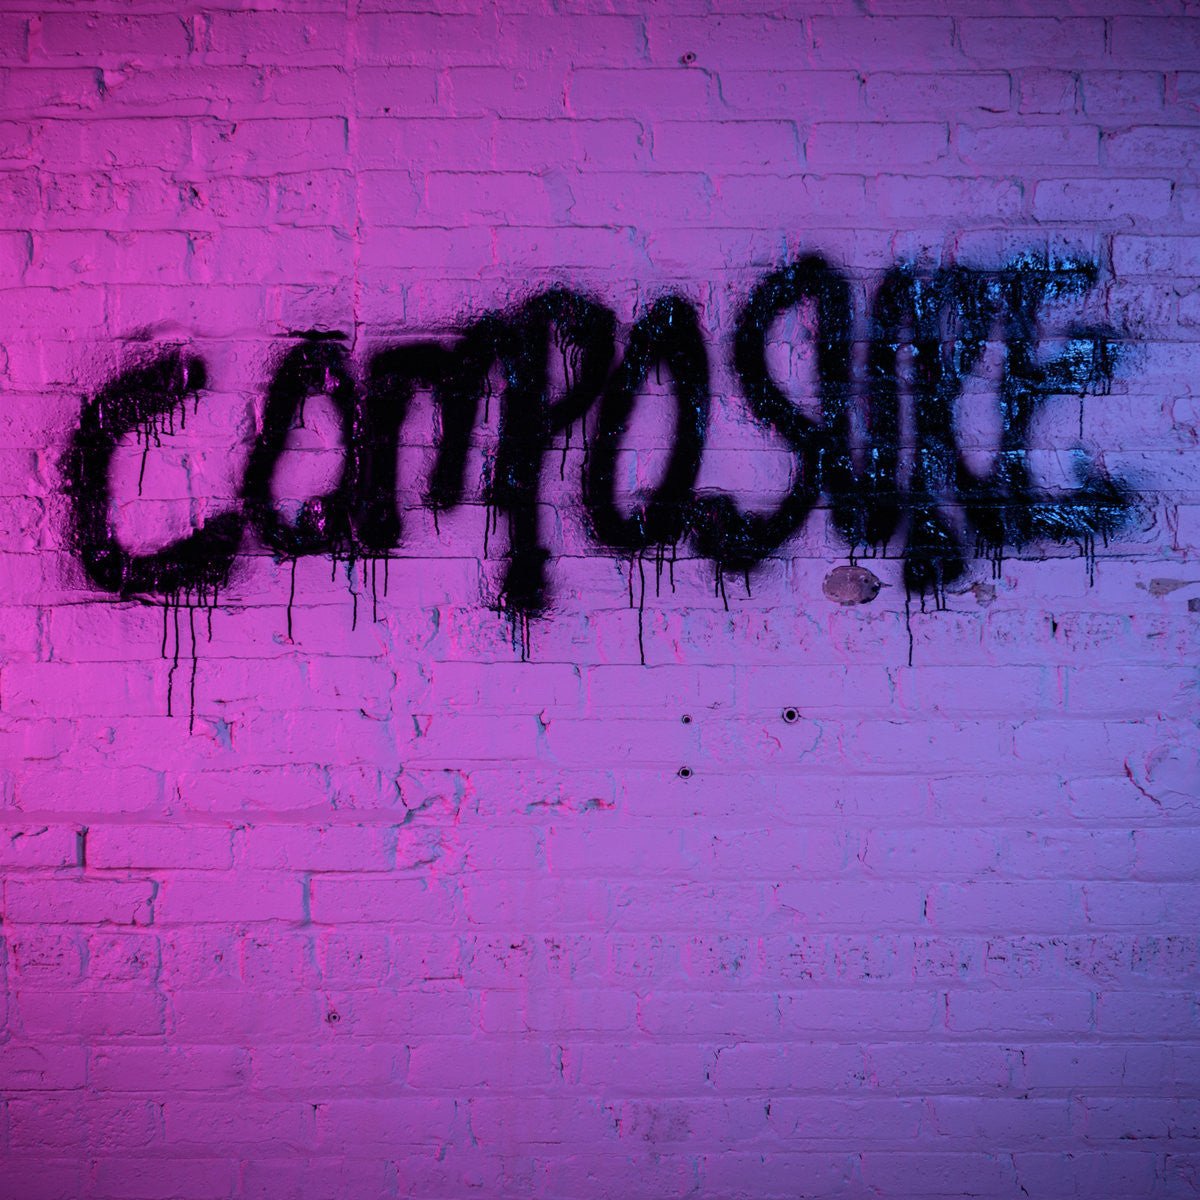 Rabble Rabble - Composure - New Vinyl Record 2016 Eye Vybe Records - Chicago IL Indie Rock w/ Psych vibes and a bit of shoegaze.